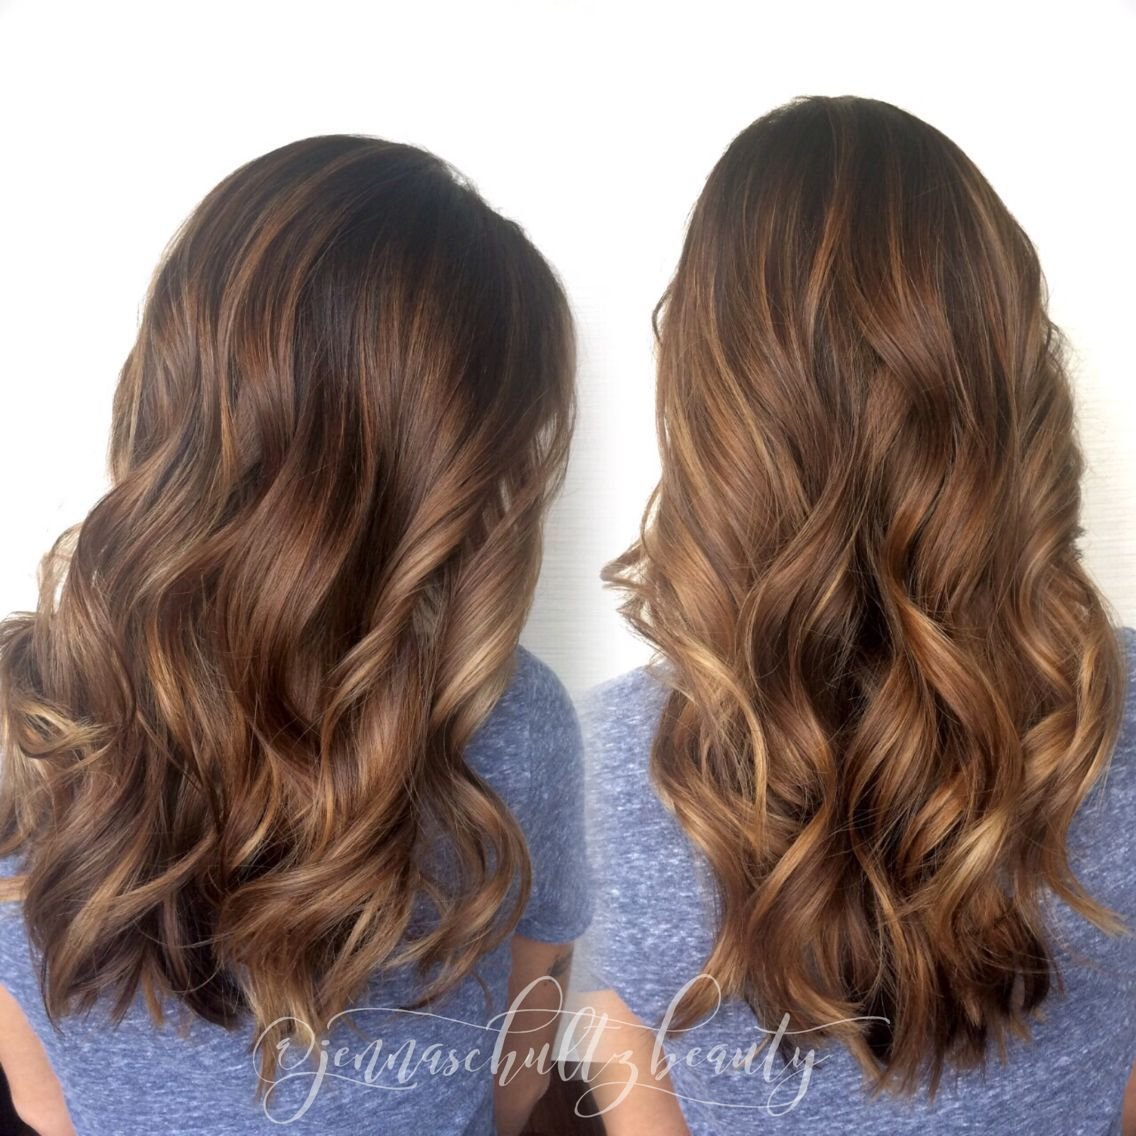 New Golden Balayage Highlights By Jenna Schultz In Colorado Ideas With Pictures